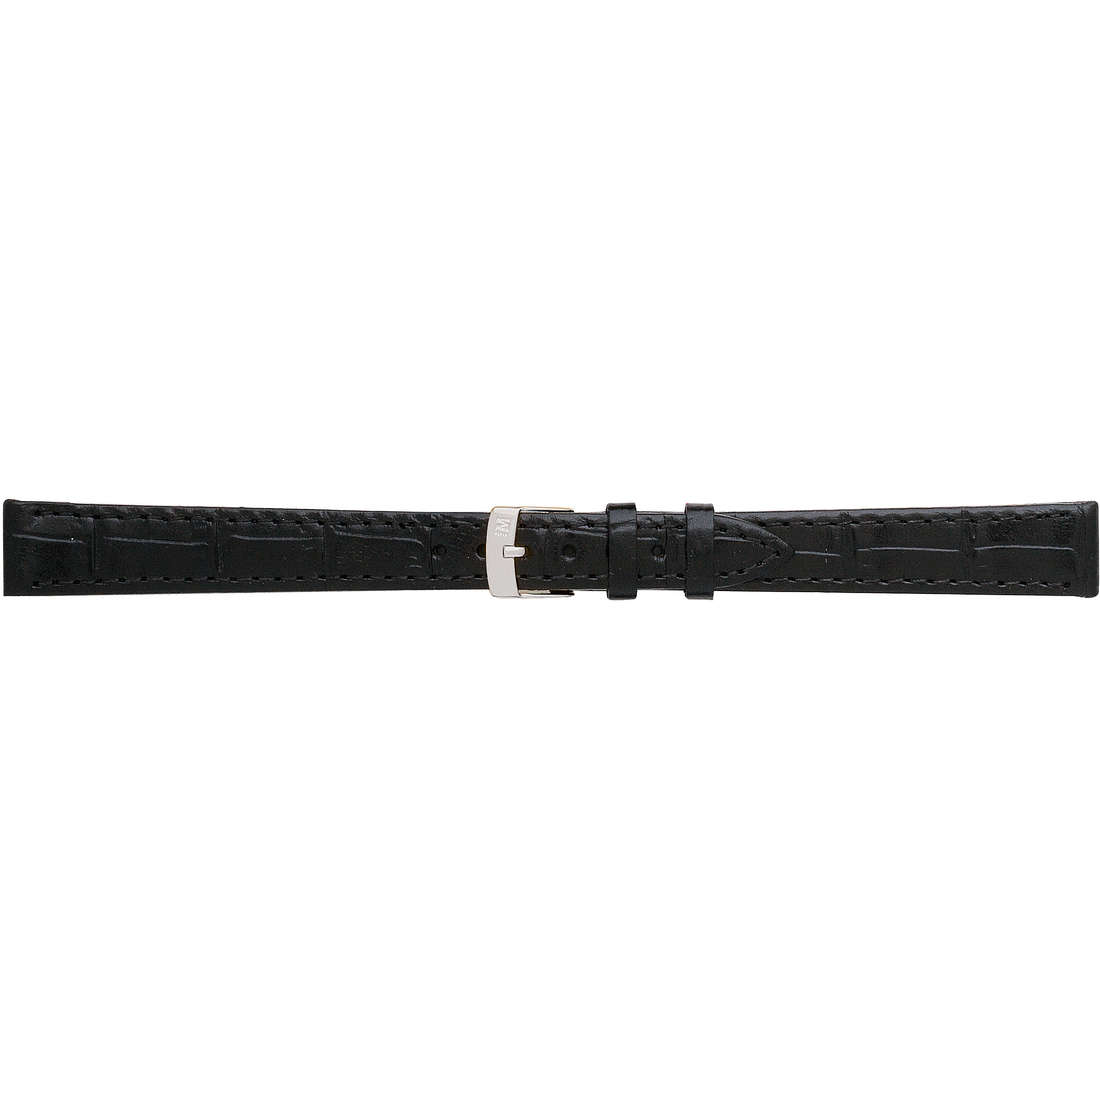 watch watch bands watch straps unisex Morellato I Lunghi A01Y2524656019CR20